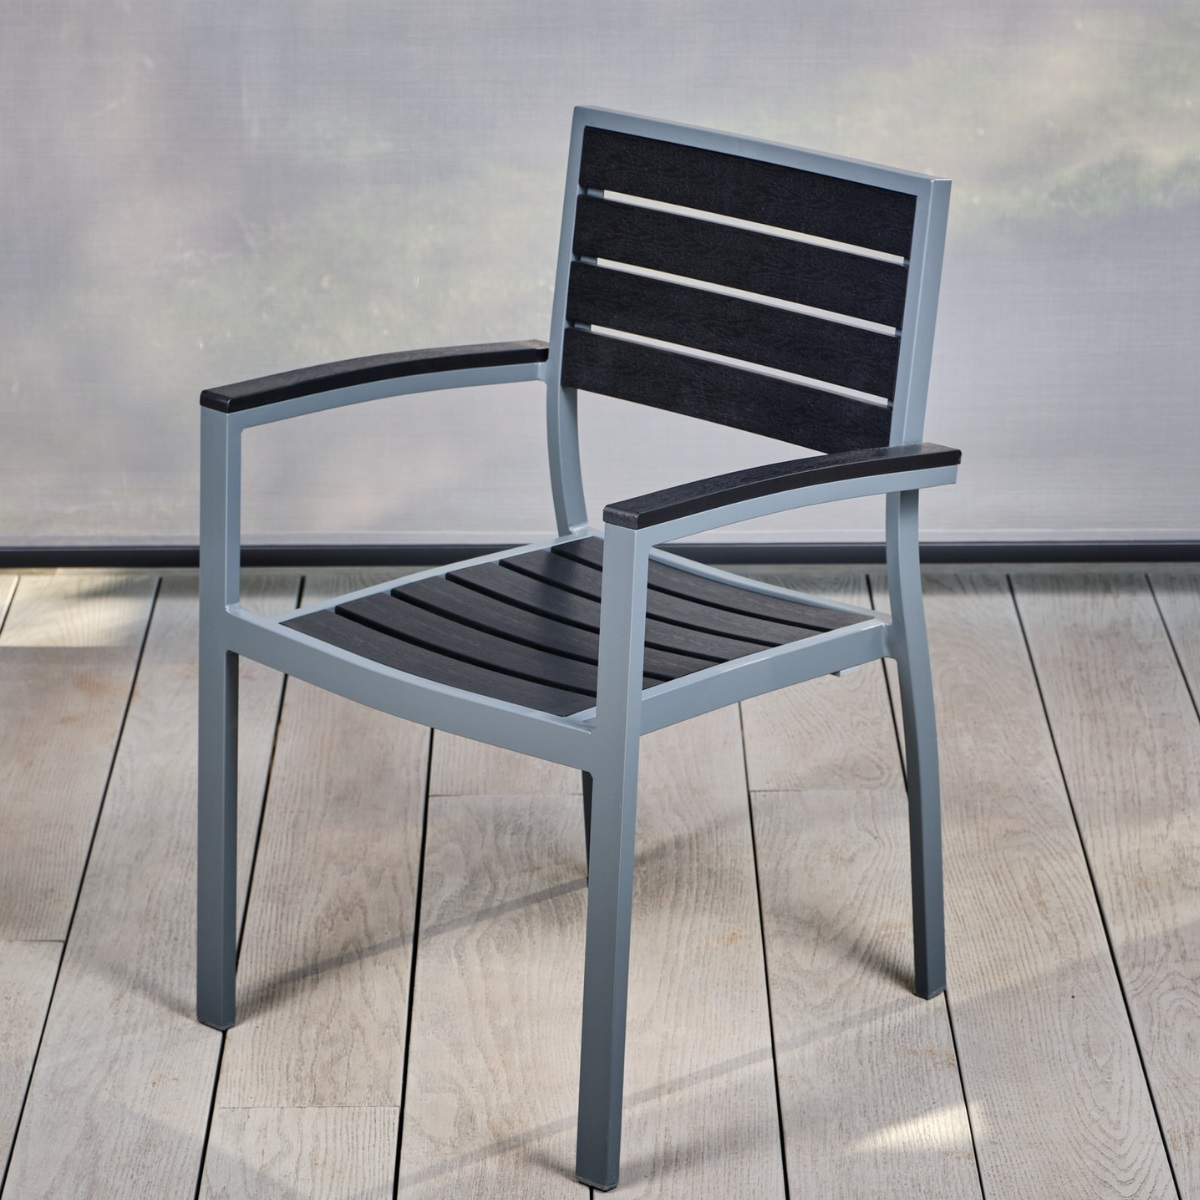 A black slatted plastic and grey aluminium outdoor dining chair